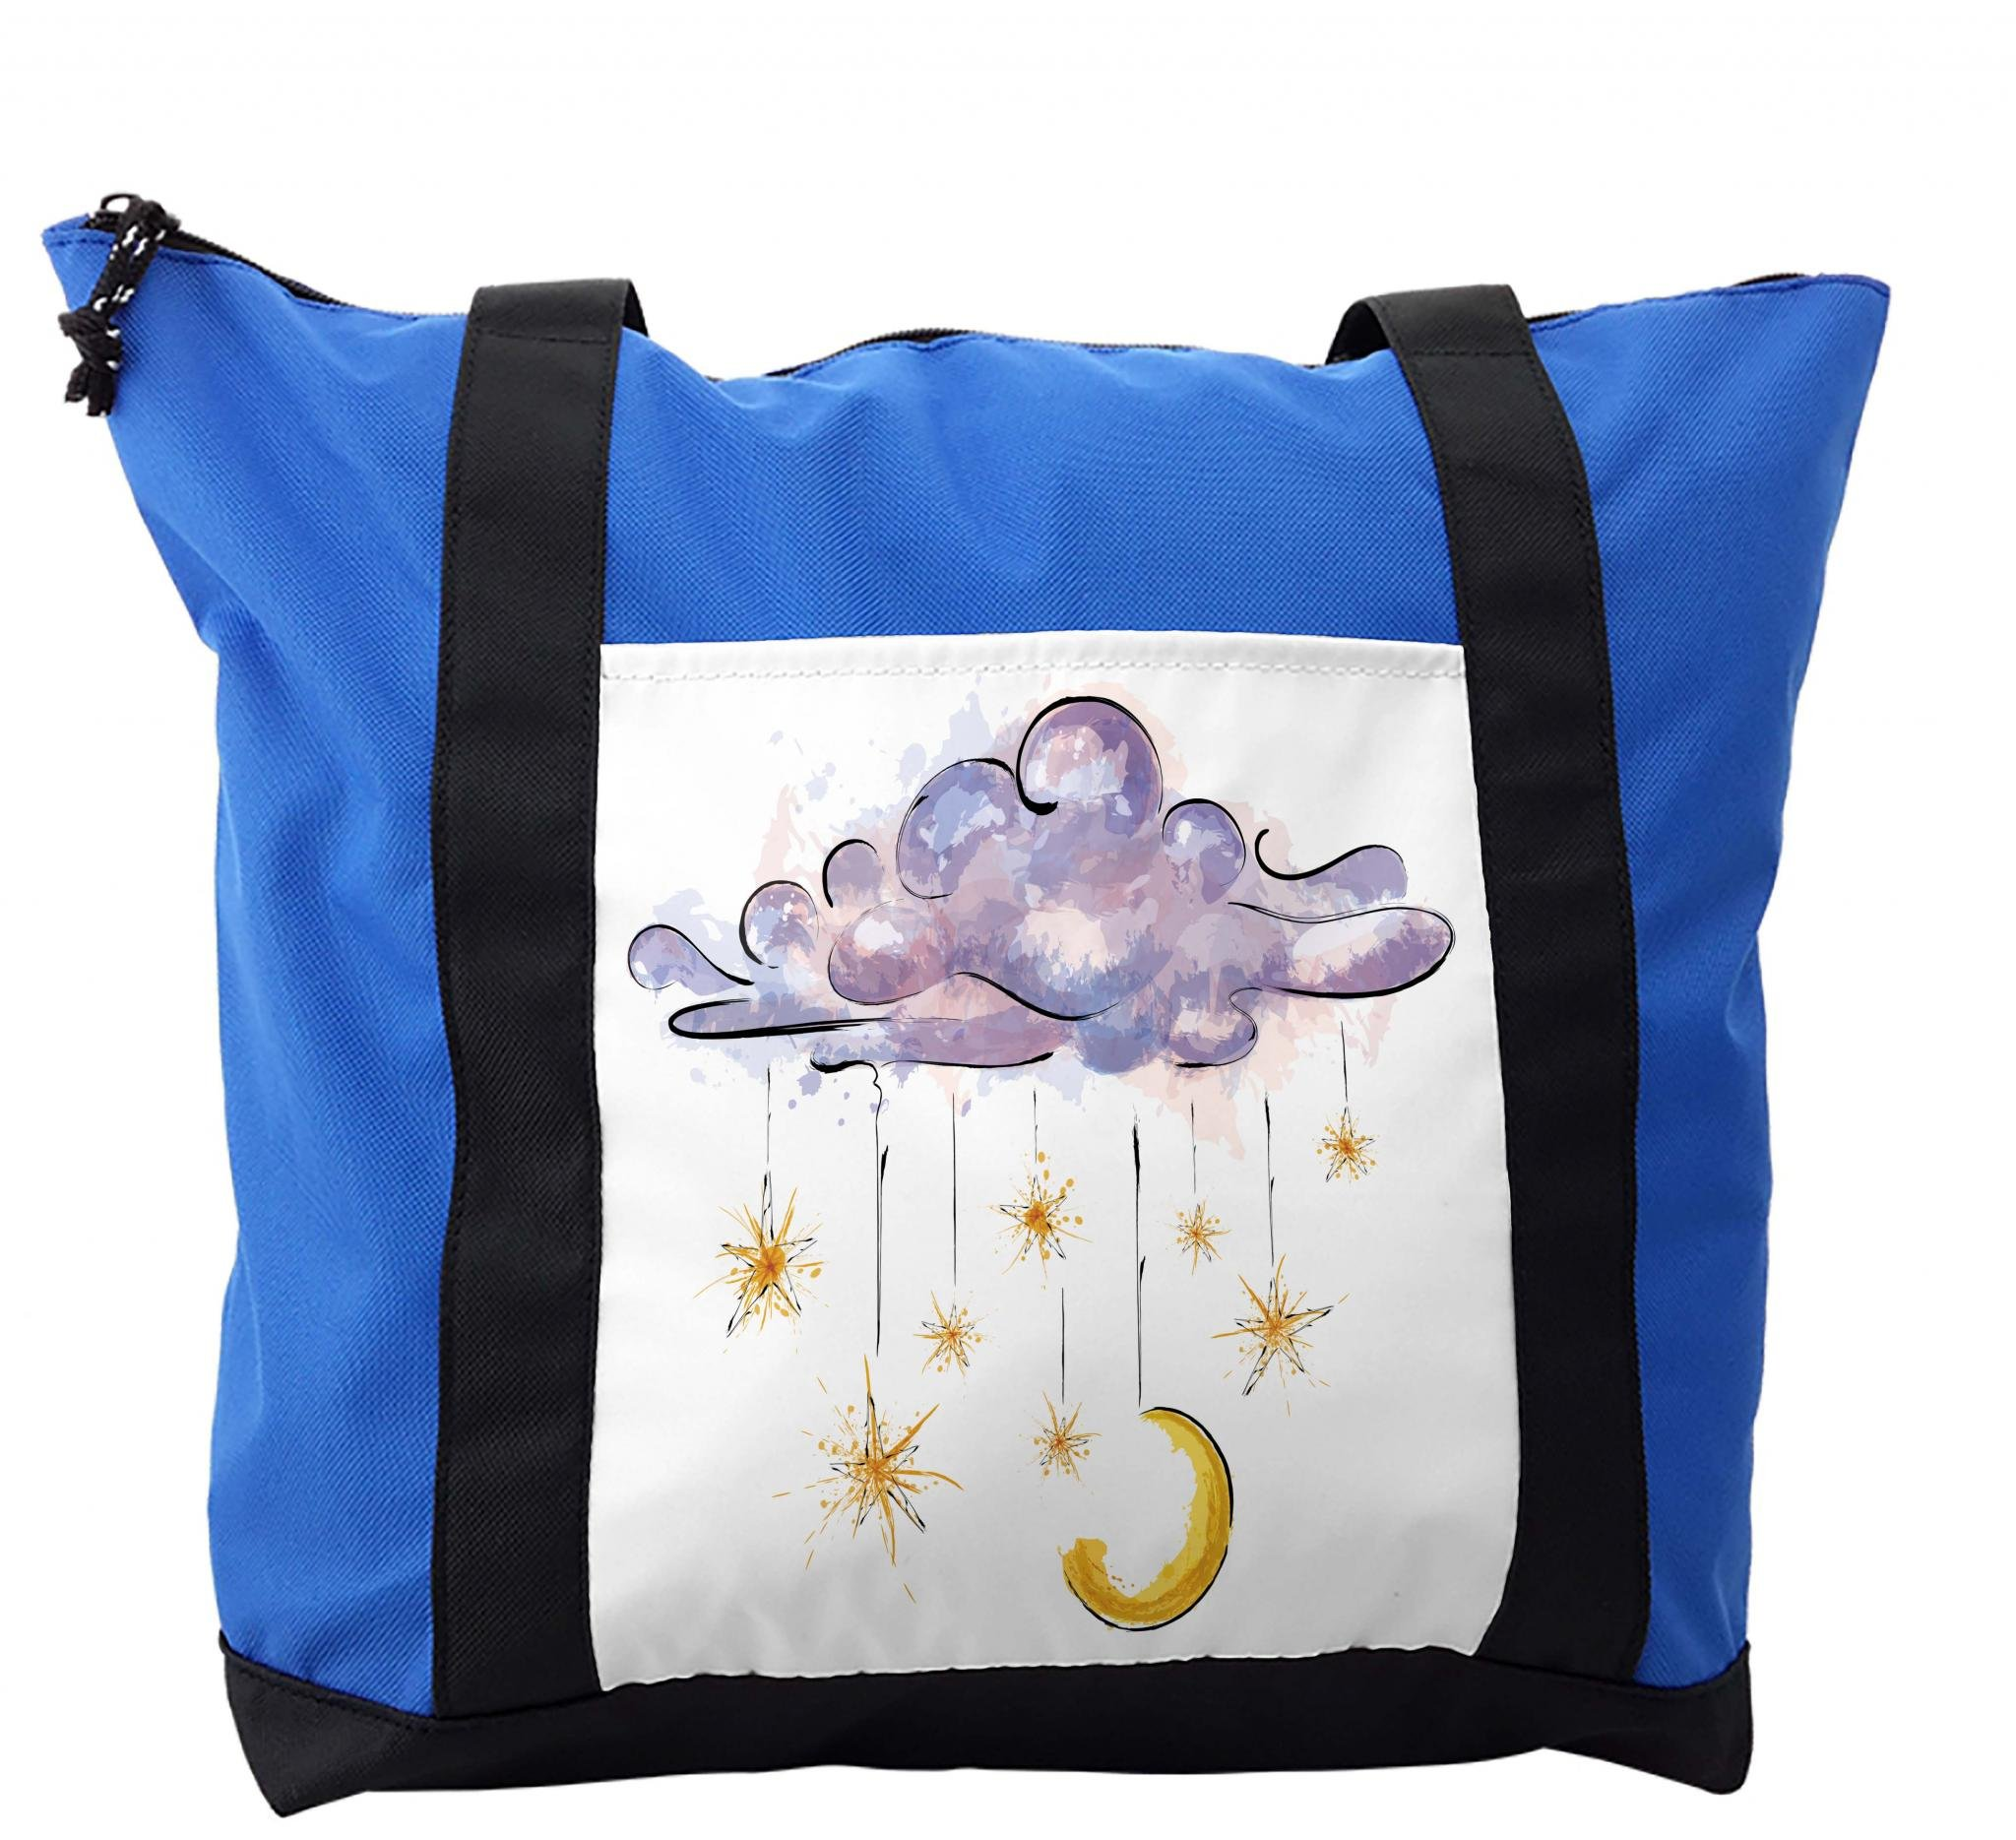 Lunarable Astrology Shoulder Bag, Hanging Moon and Stars, Durable with Zipper